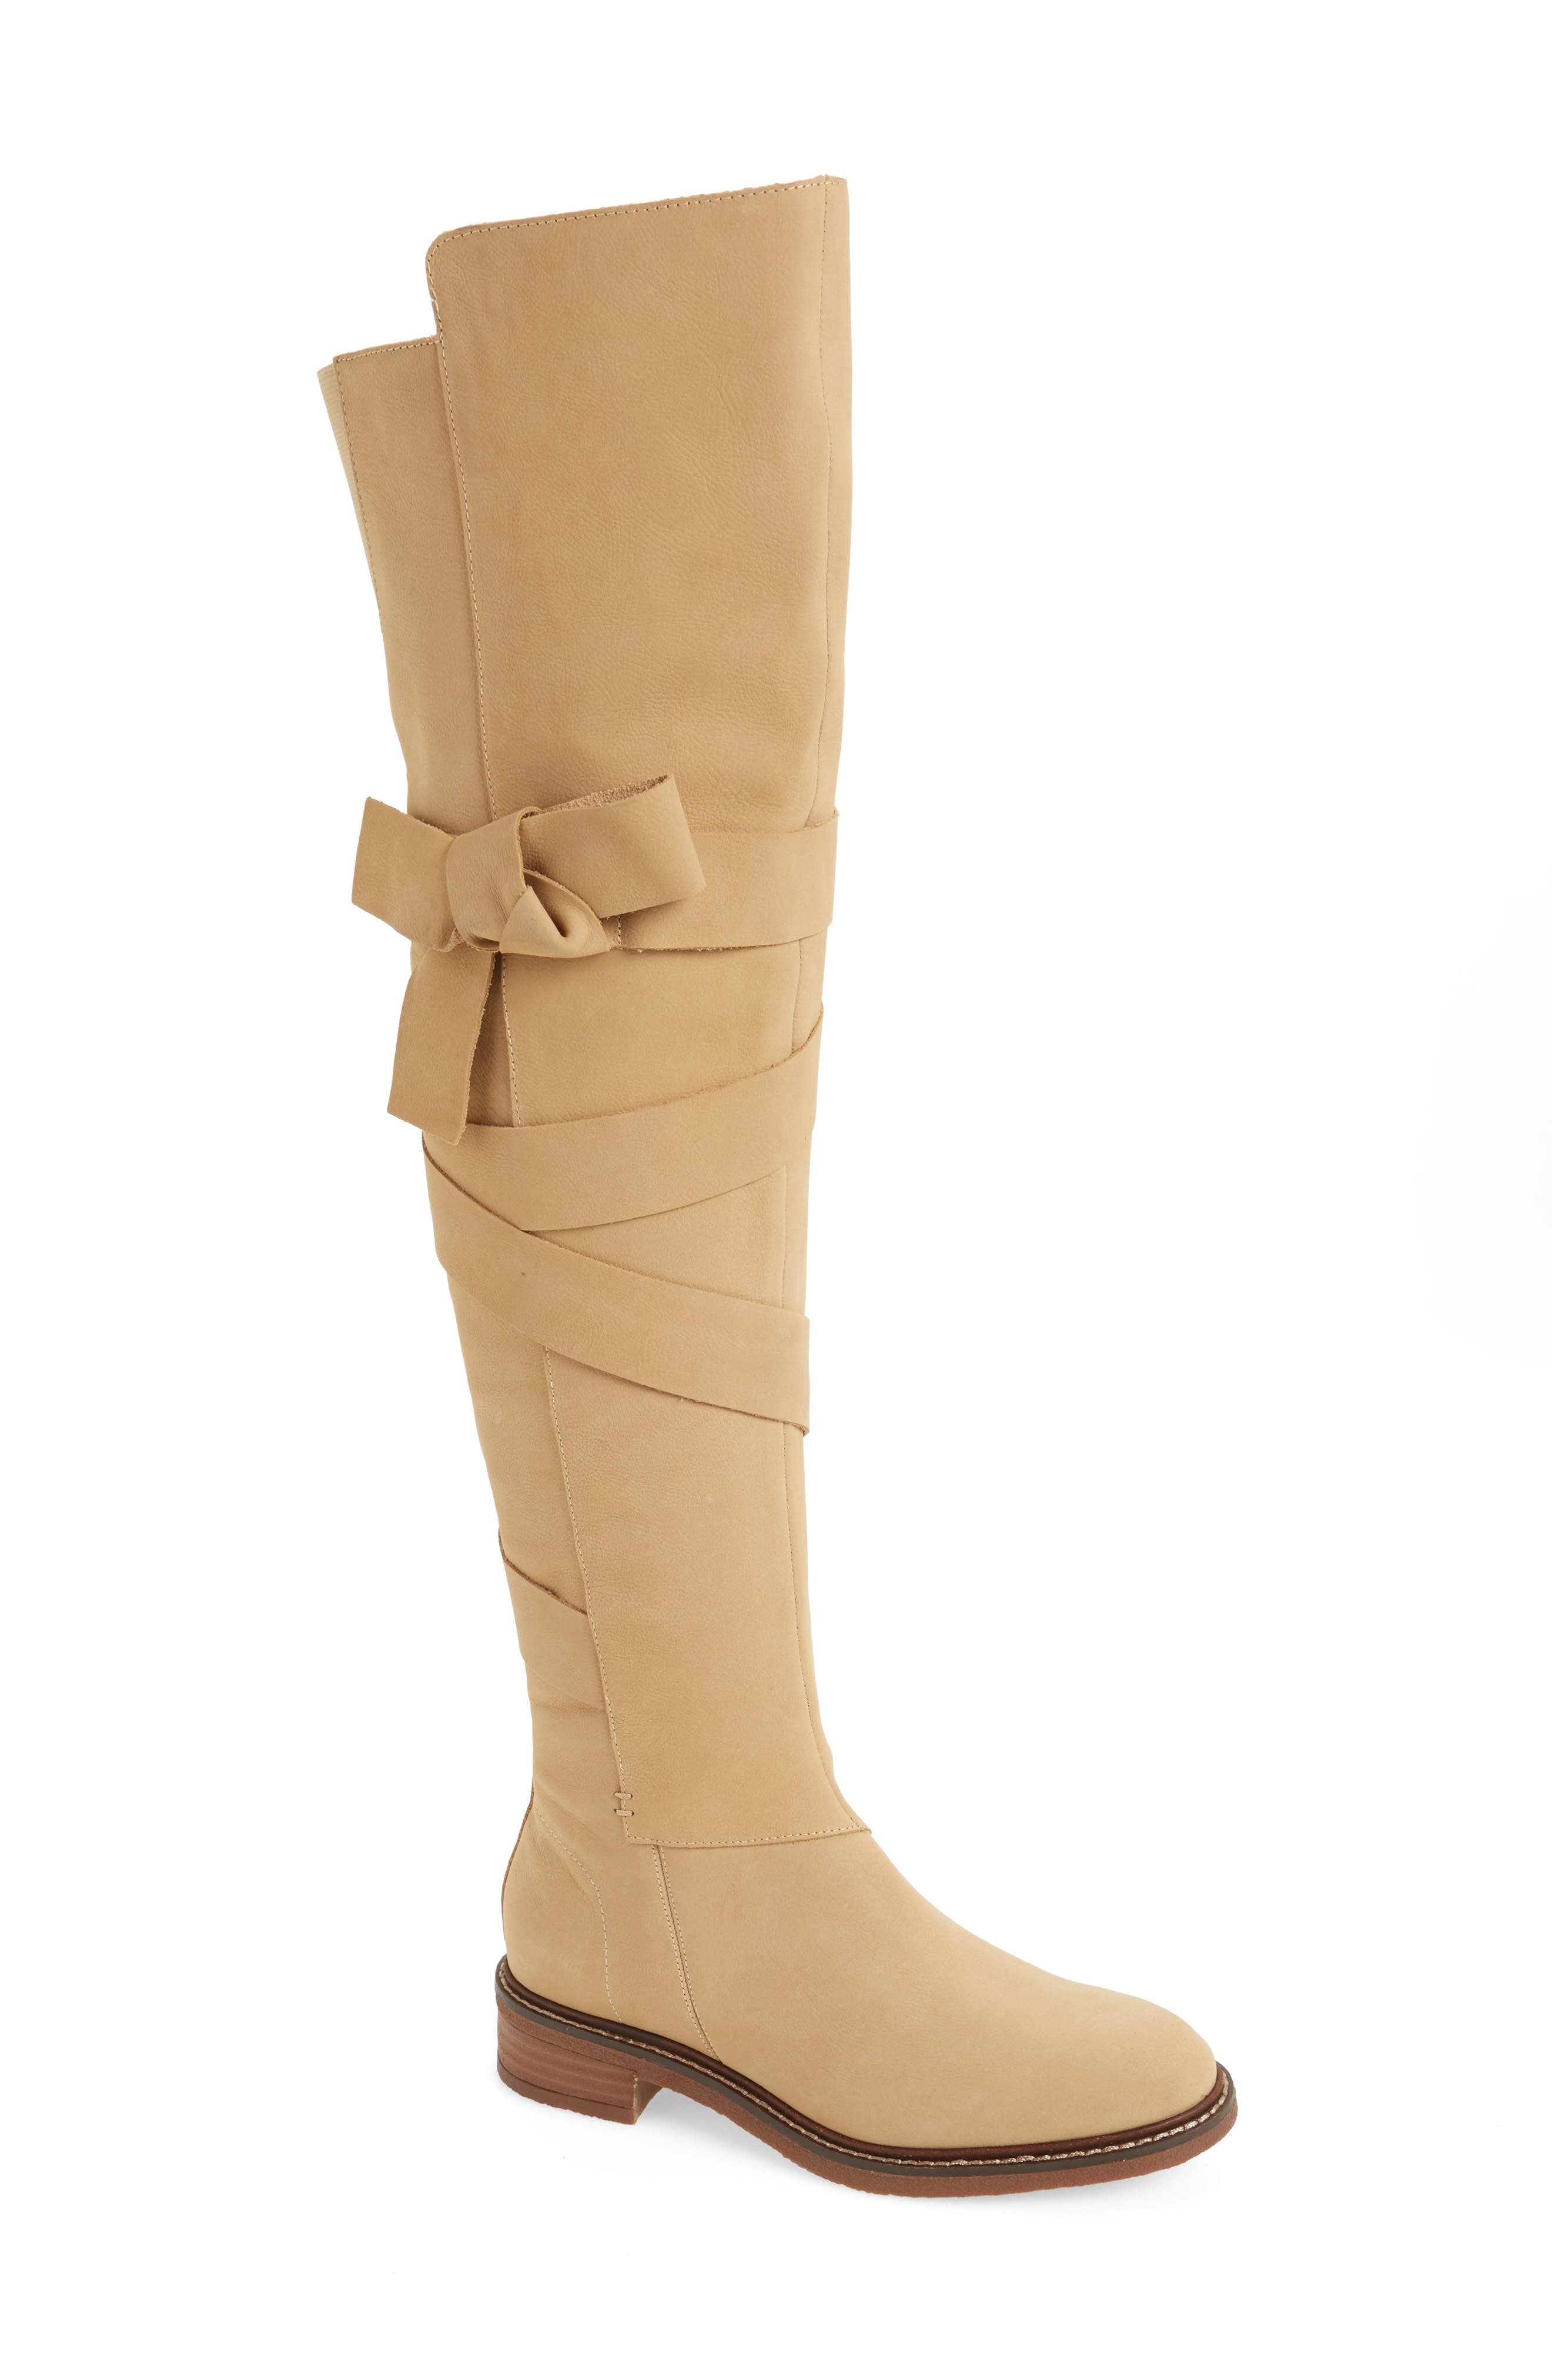 Colby Over the Knee Boot,                         Main,                         color, Ginger